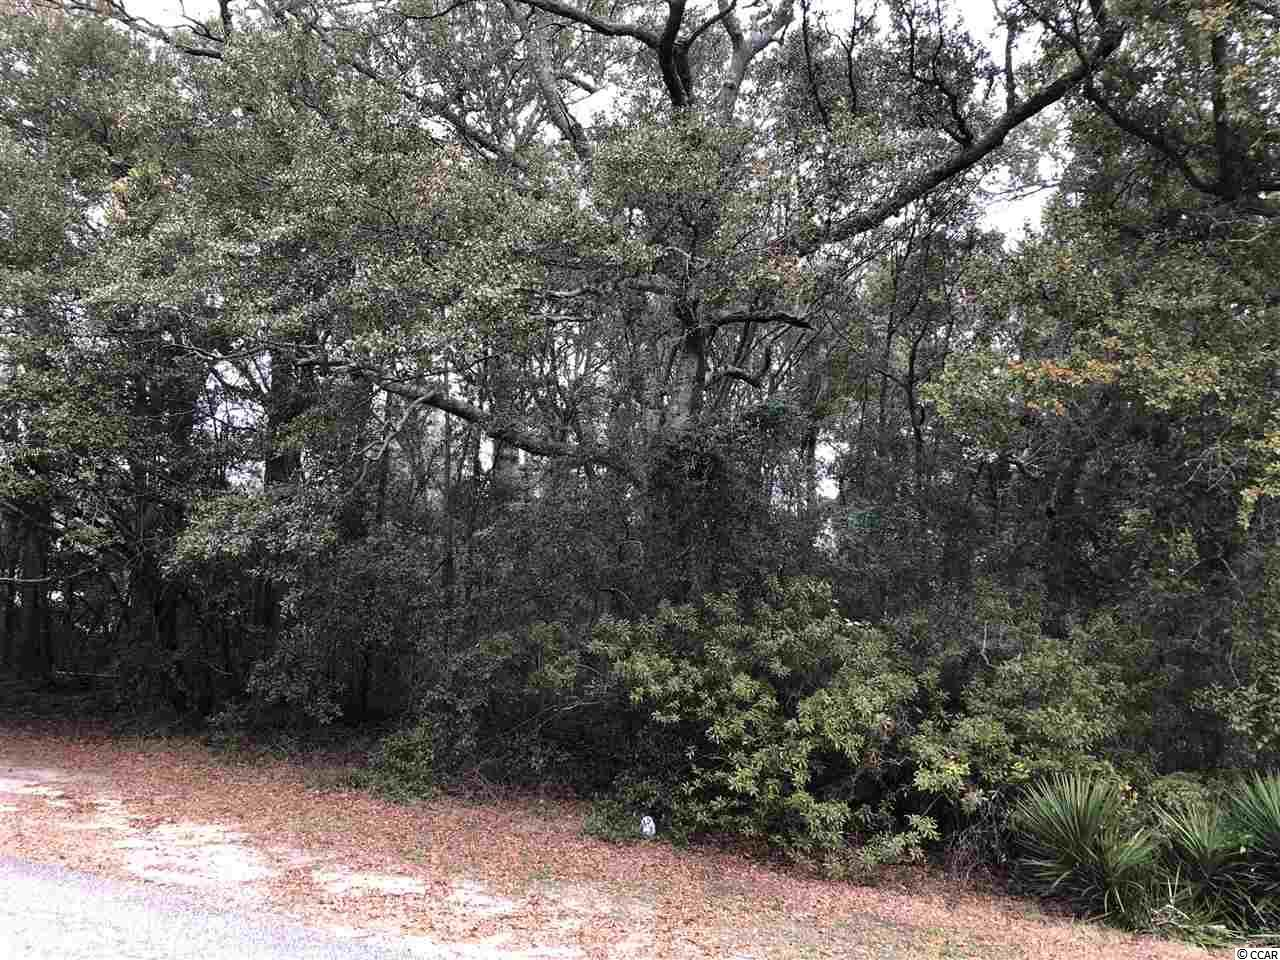 """Location, Location, Location! This is one of a few lots that is left in coveted Arcadian Shores- a """"walk to the ocean"""" community that is tucked away and unknown to many, but loved by all who live there. It's a perfect place to build your dream home. The sidewalked streets are flanked with mature trees, the lots are large, the homes are filled with character and not cookie cutter, and you can tell it's a well established neighborhood and yet there is no mandatory HOA. You can pay a small fee to park your golf cart at the beach access which is contracted for Arcadian Shores owners on the """"Arcadian"""" stretch of the Golden Mile. Very close to golf, shopping, restaurants, theatres, Hwy 22 and 31. Don't have a builder? Contact listing agent or your realtor for great custom builder ideas and make Arcadian Shores your family's home for generations to come!"""